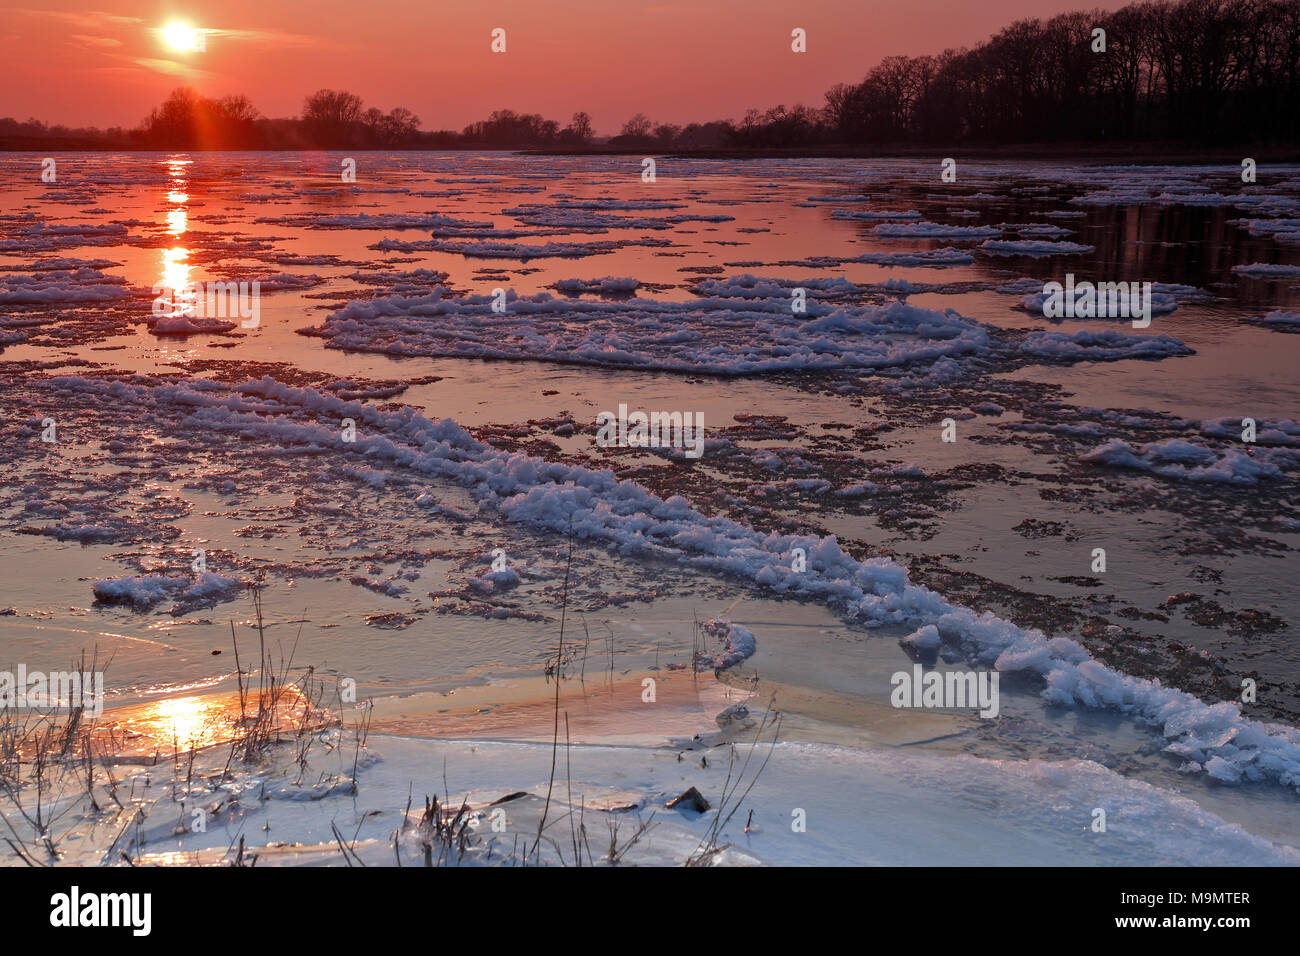 Ice run, small ice floes on the Elbe at sunset, Biosphere Reserve Middle Elbe, Dessau-Roßlau, Saxony-Anhalt, Germany - Stock Image